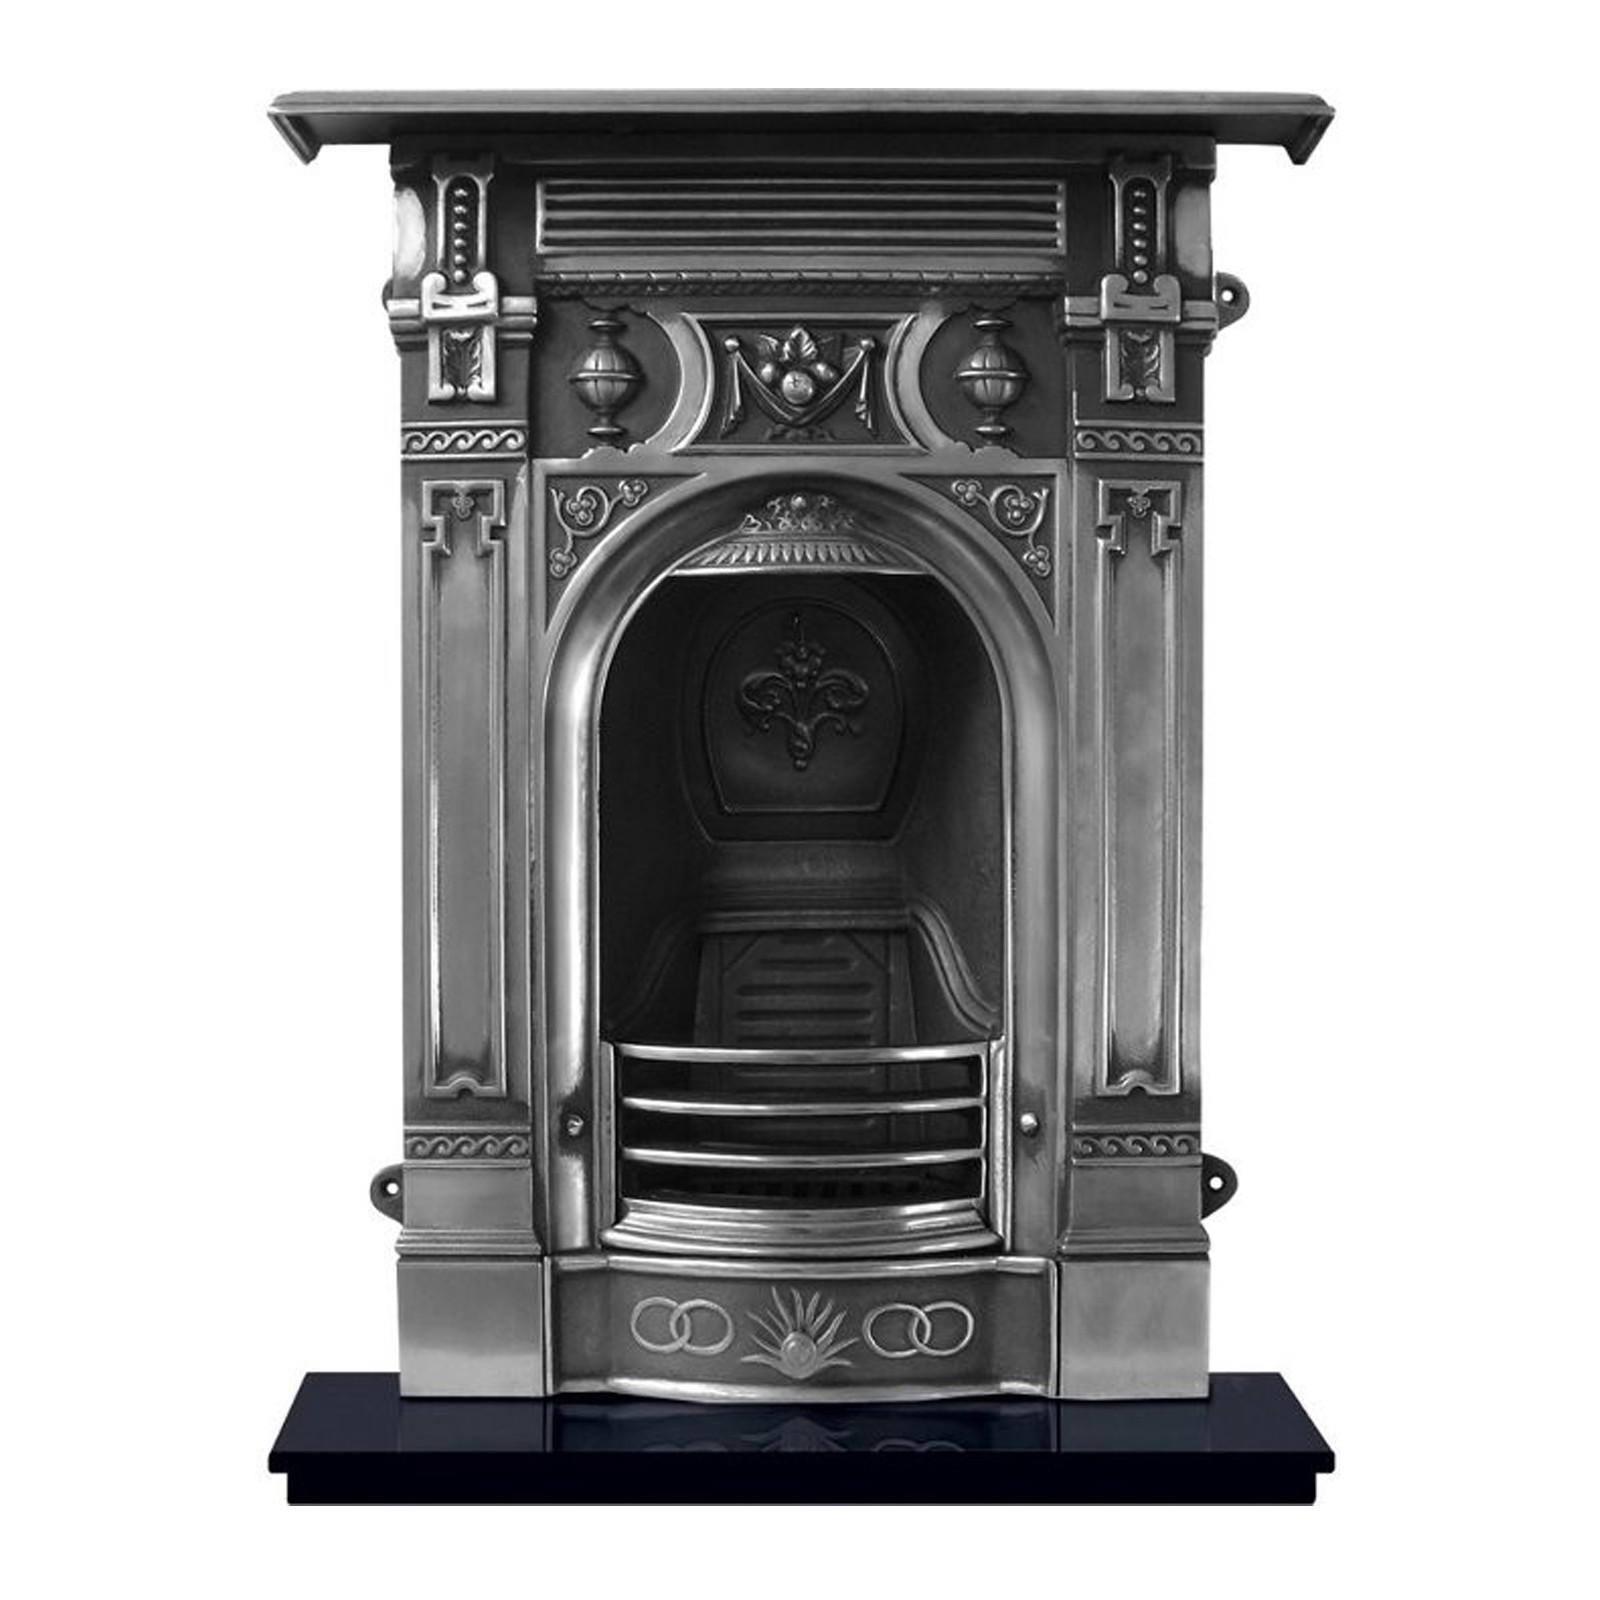 under fresh kit fireplace metal ideas surround cool decoration design furniture small home